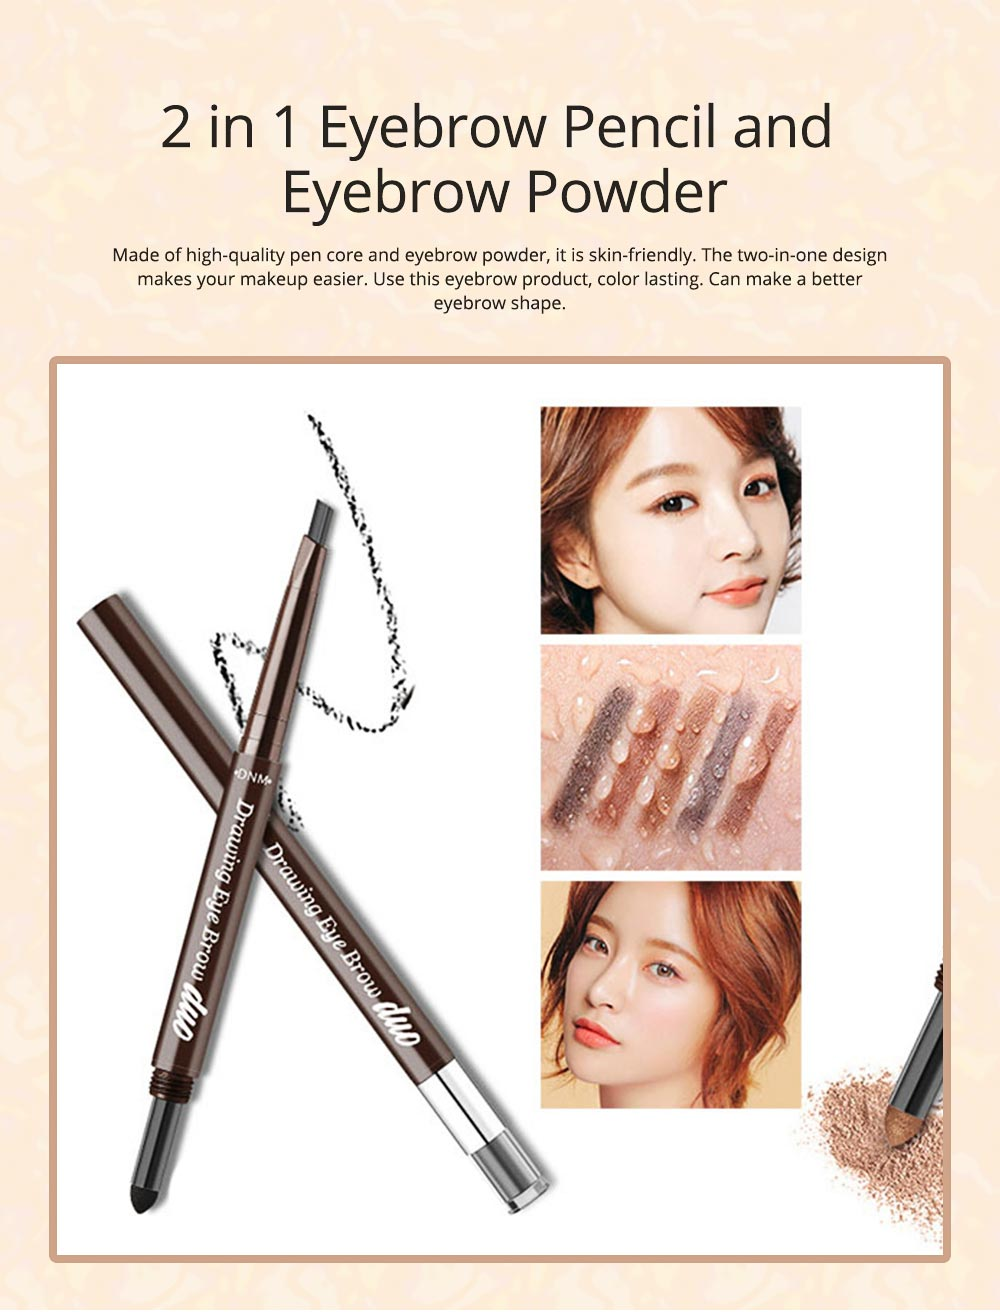 2 In 1 Eyebrow Pencil And Eyebrow Powder, Eyebrow Pencil Powder With Automatic Rotation Waterproof And Sweat-proof 0